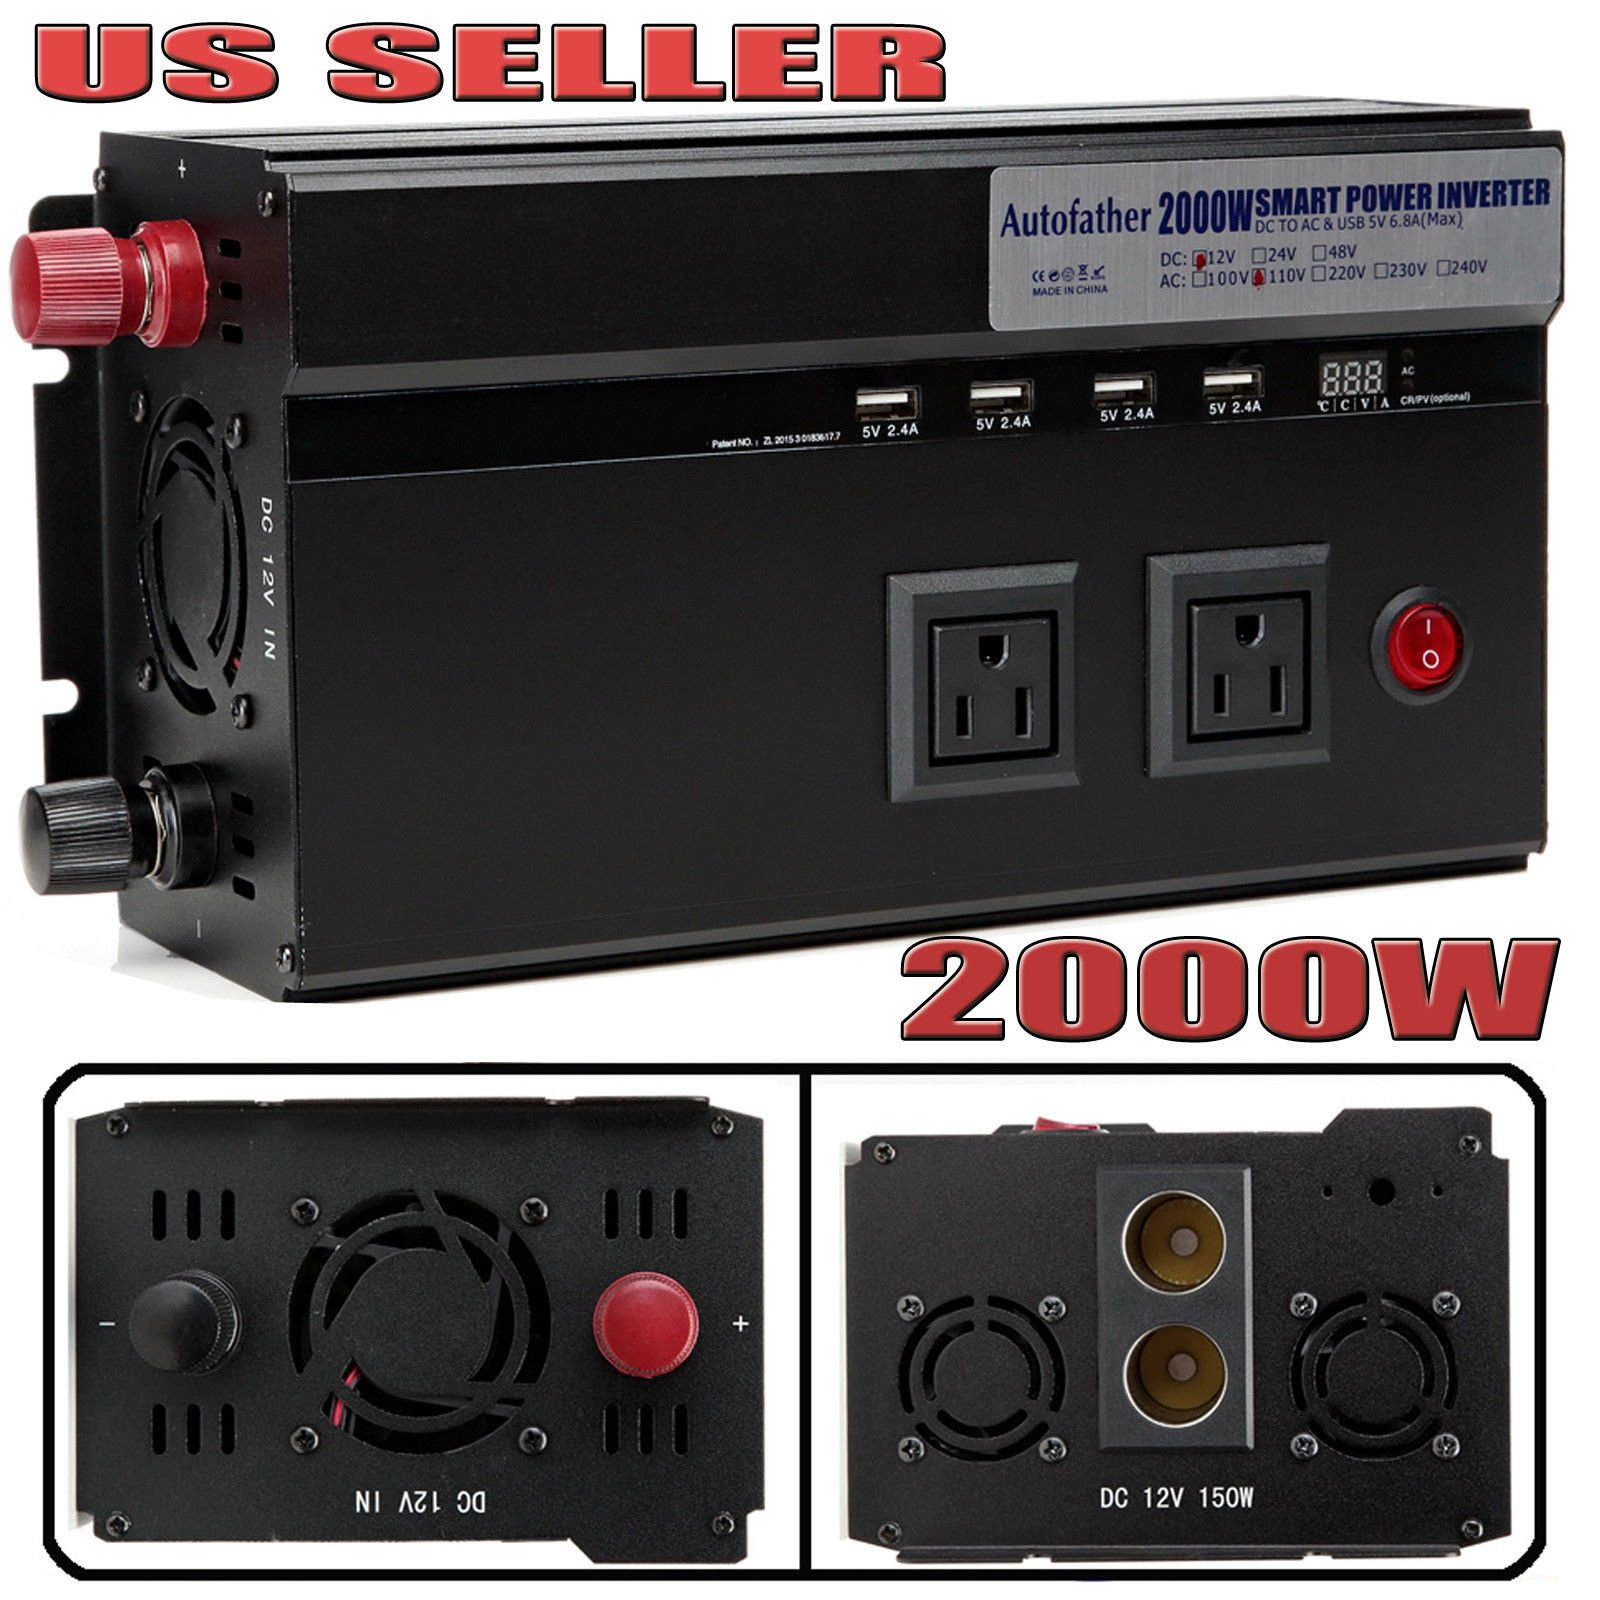 Autofather 2000W Car Power Inverter DC 12V TO AC 110V Charger Converter 2 Cigarette Lighter Sockets + 4 USB Charging Ports + 2 US Standard Outlets For Travel Phone/Computer/Laptop/Hairdryer/Camera